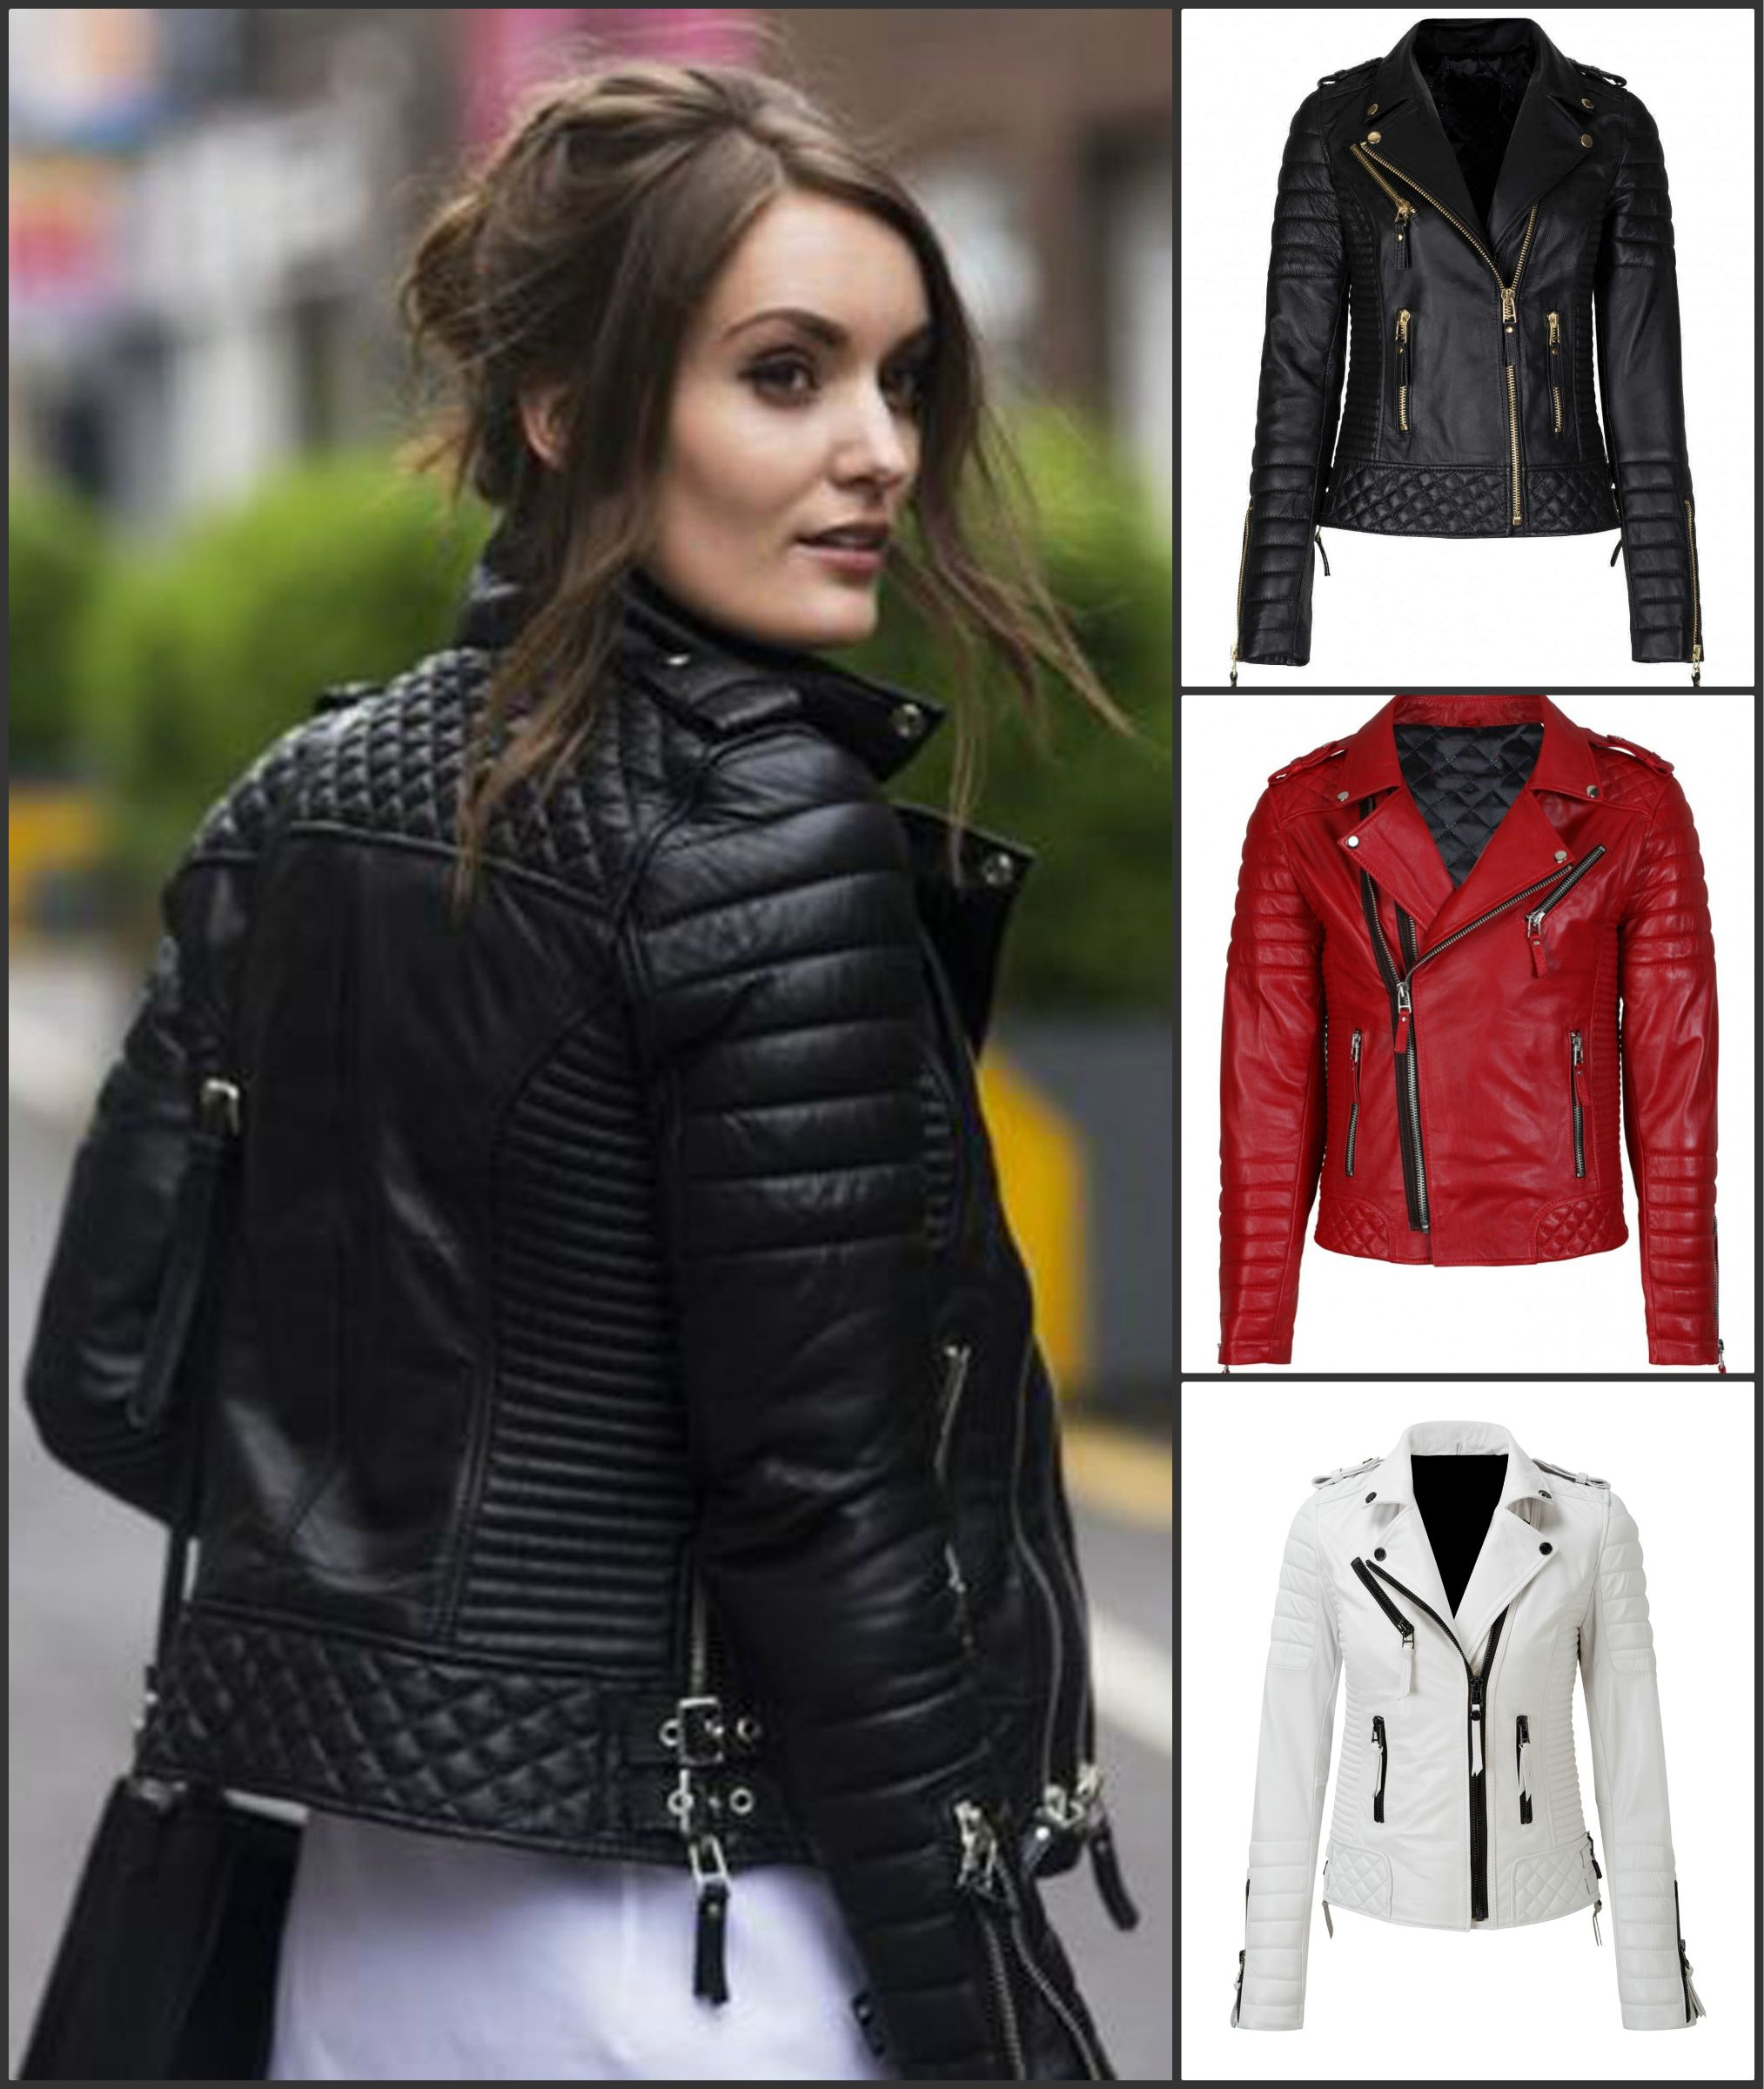 Katie Black Ladies Women/'s Rock Chic Retro Style Real Soft Sheep Leather Jacket